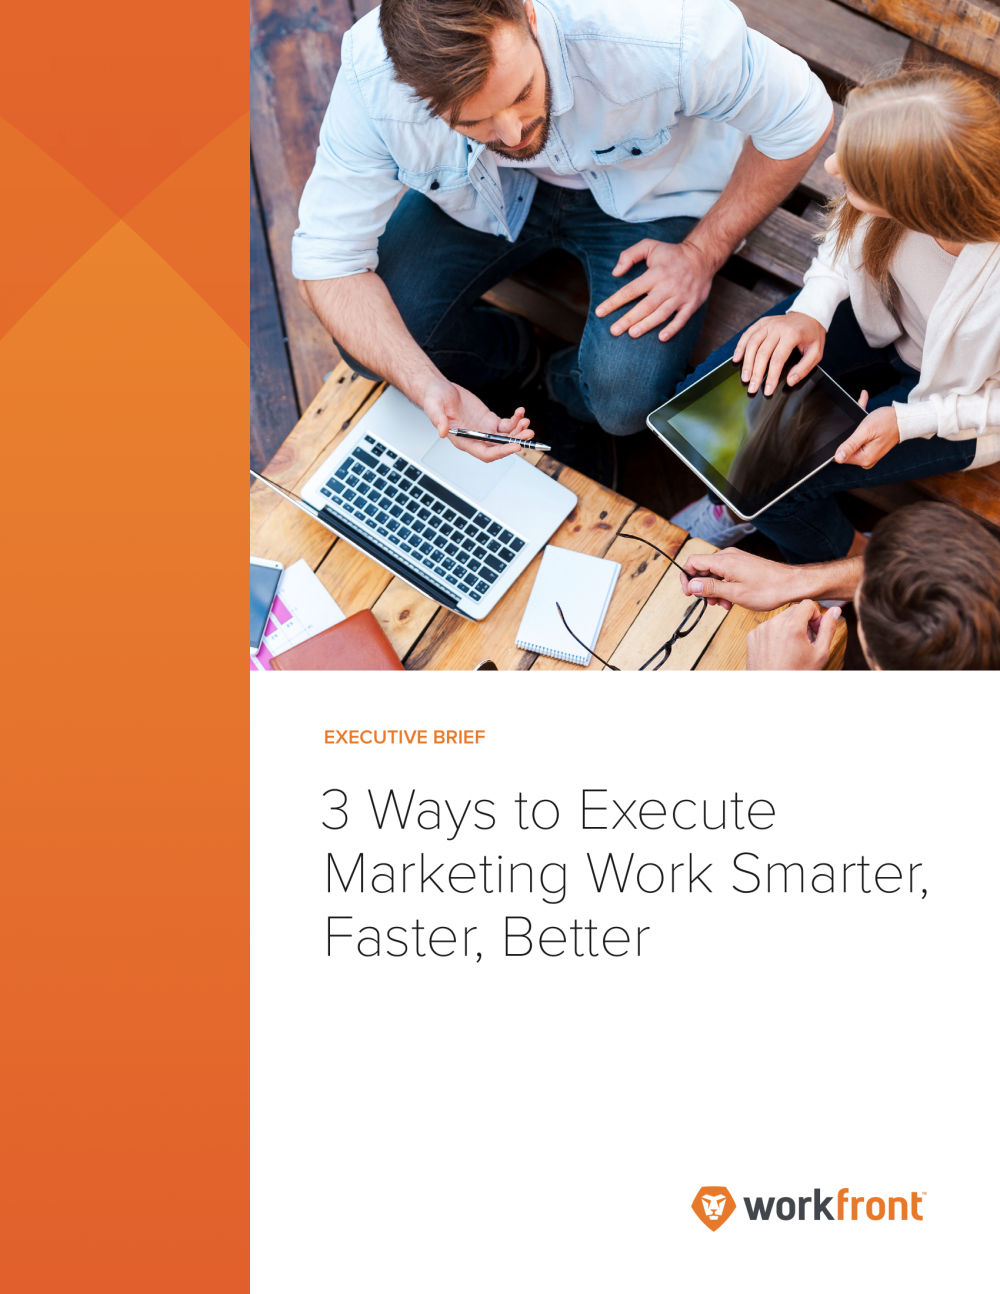 3 ways to execute marketing projects smarter, faster, and better